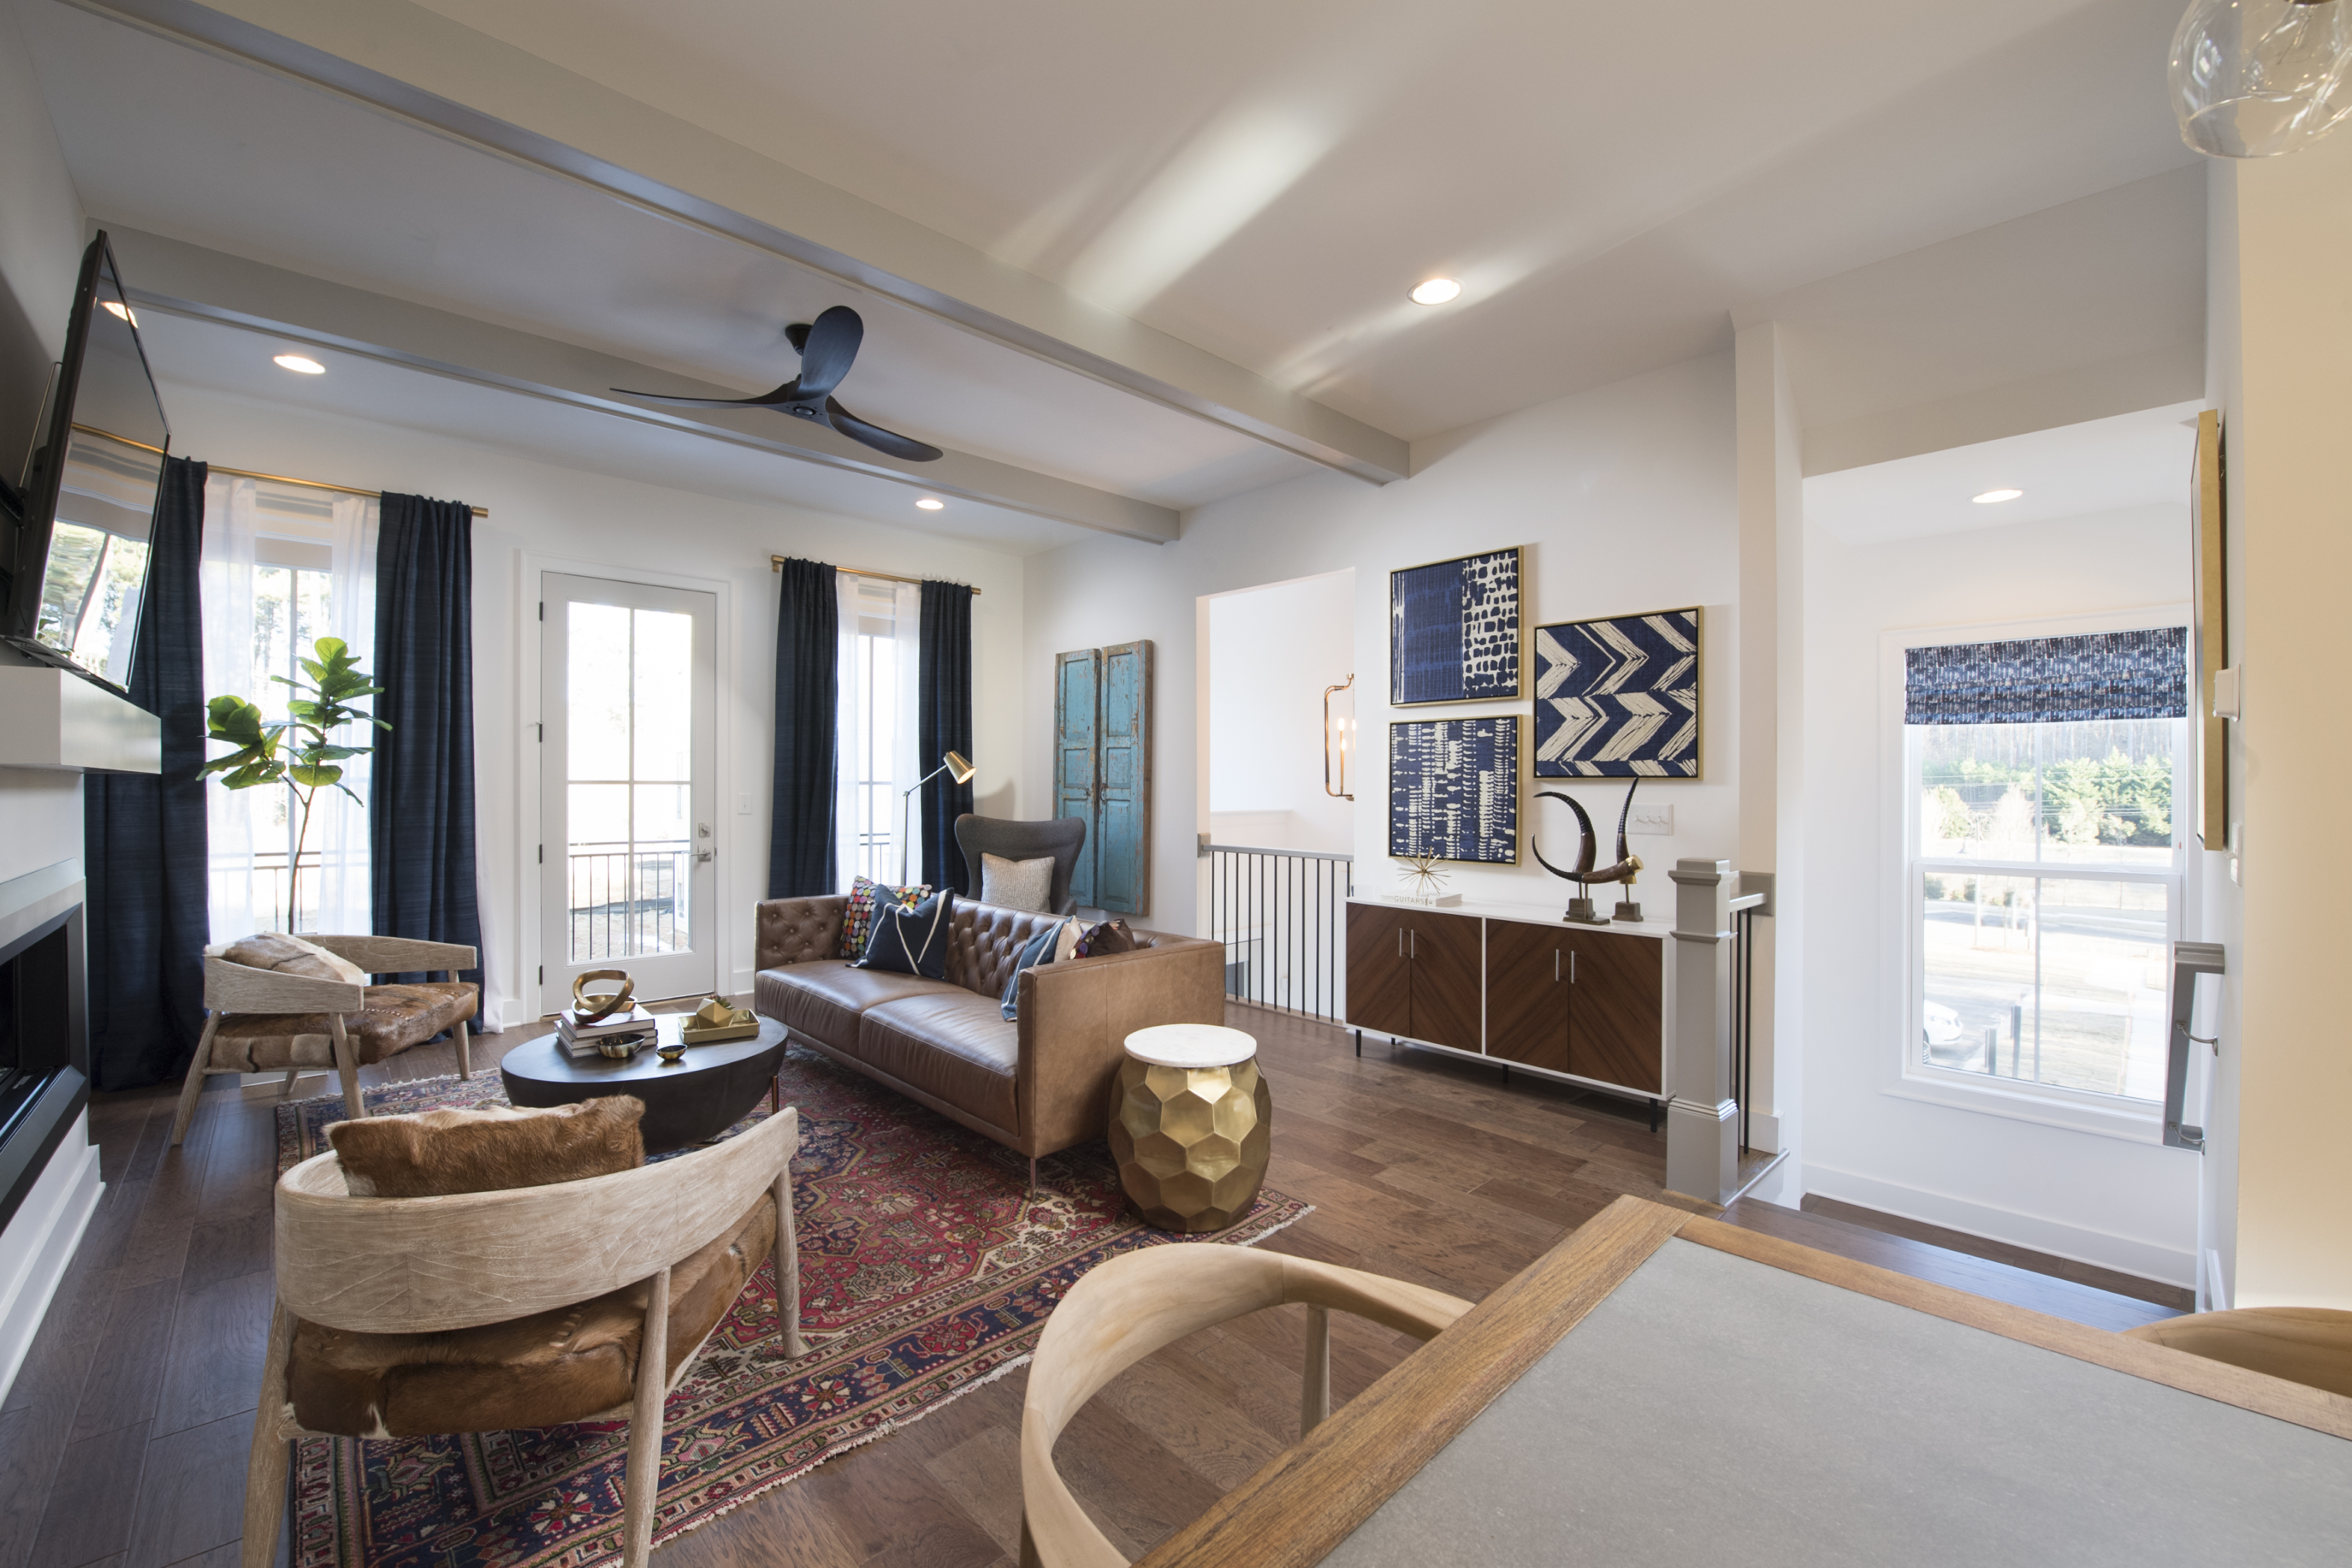 Decorated Model Homes: Decorated Model Home Opens At New Woodstock Townhome Community